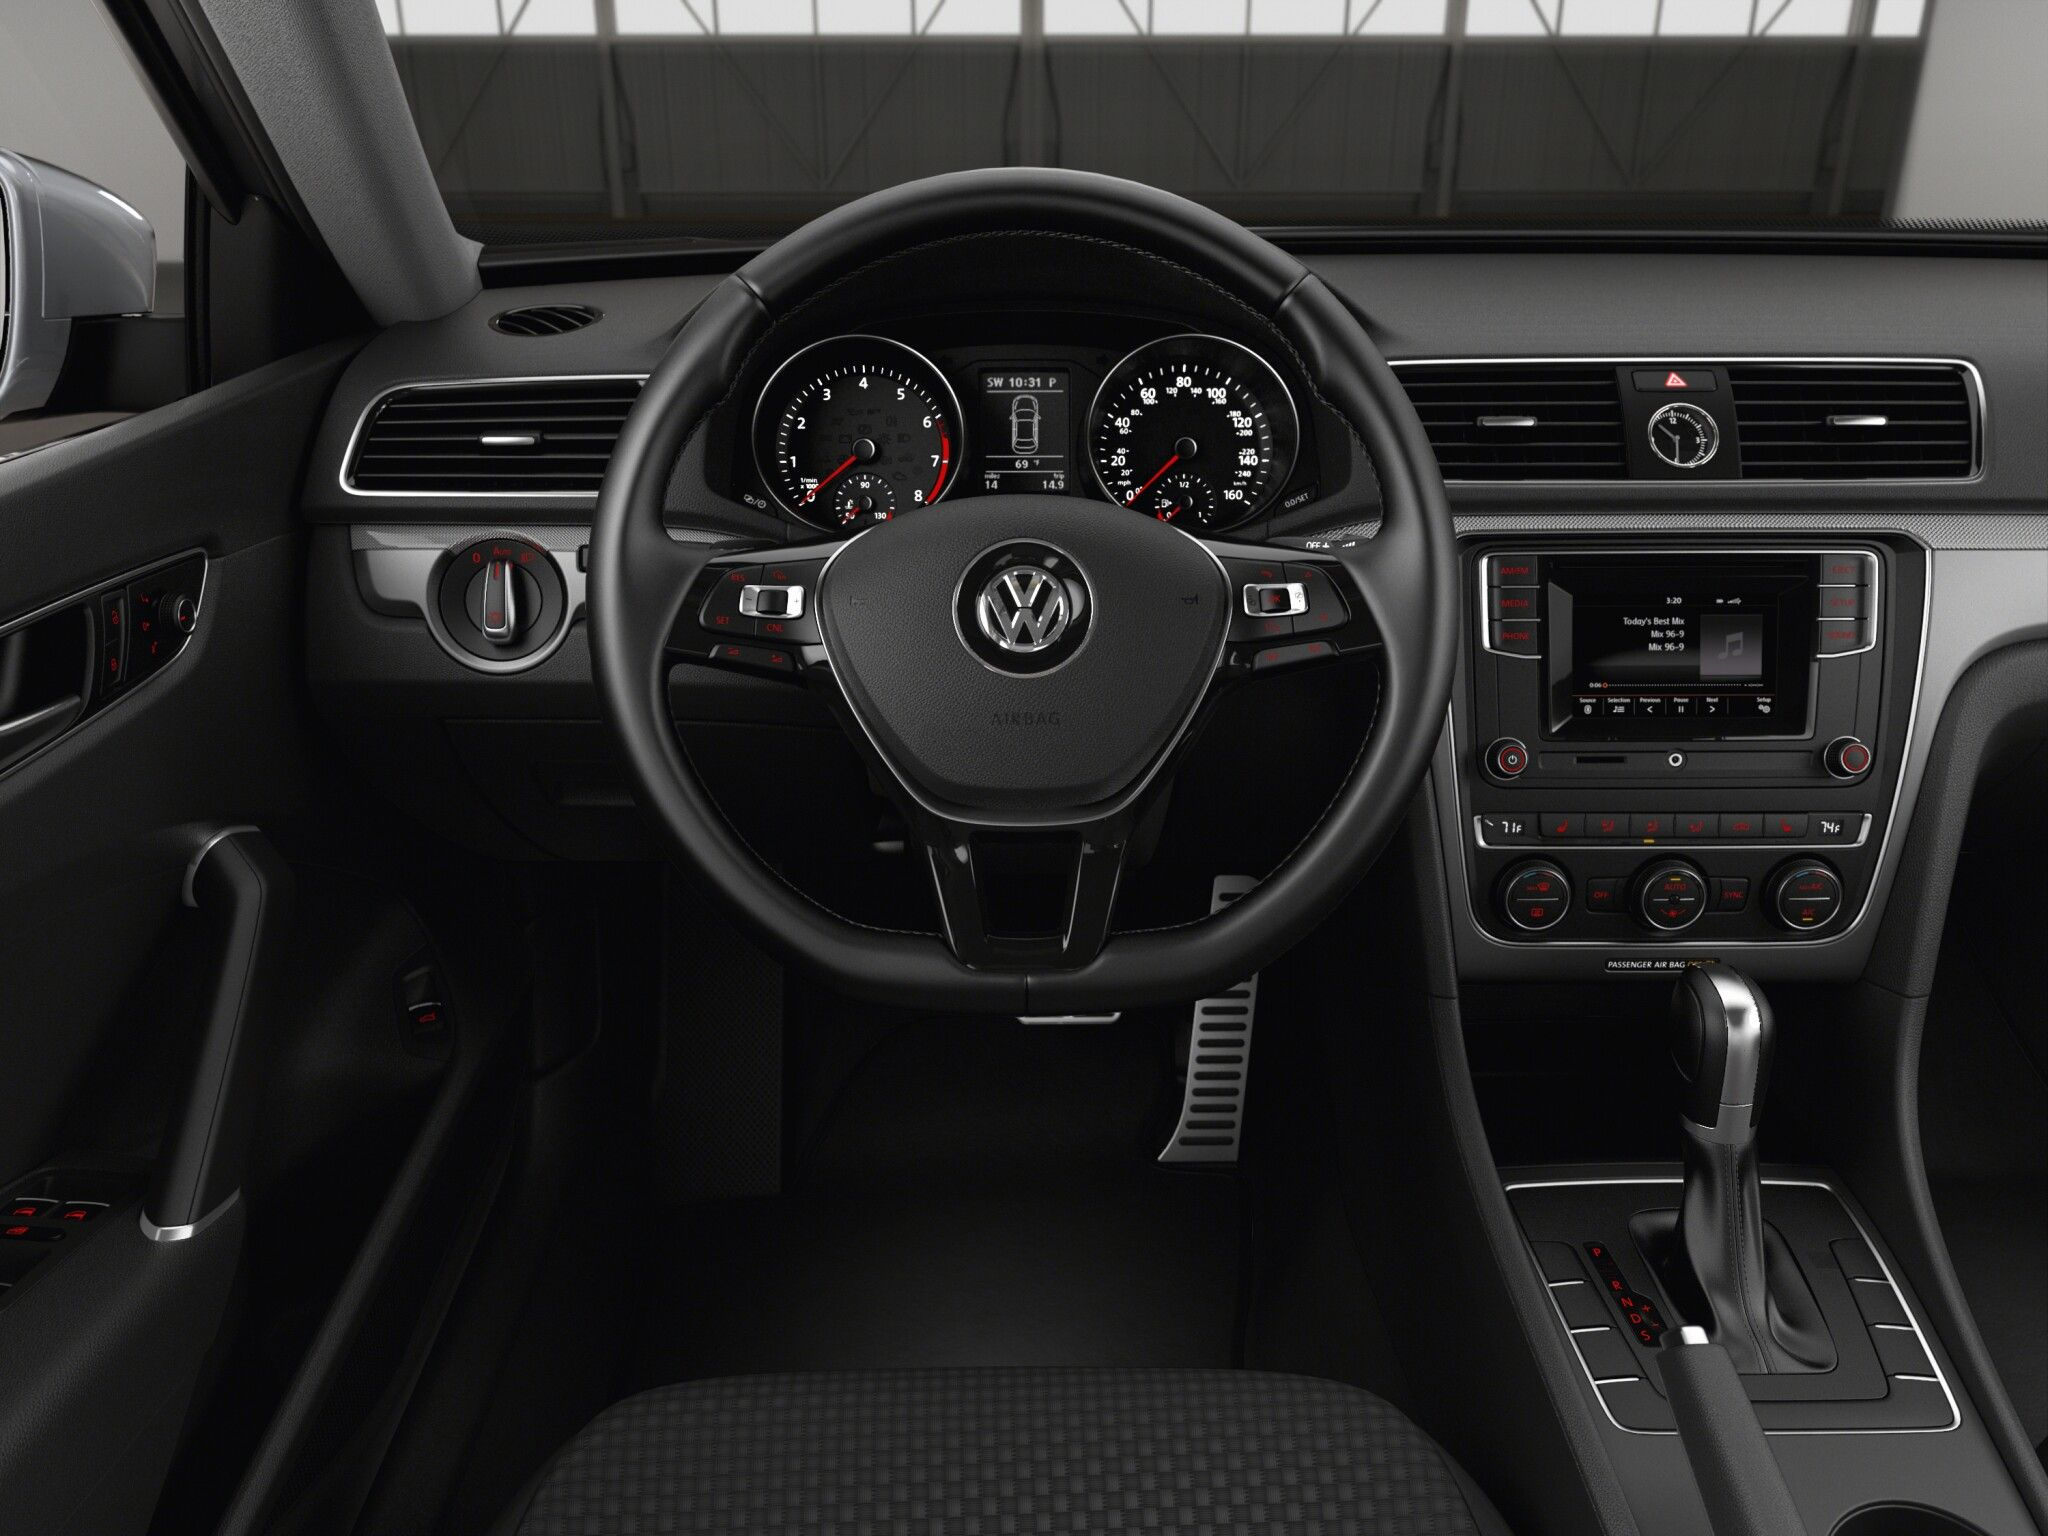 Check out the Volkswagen I just built on vw com | VW Automotive